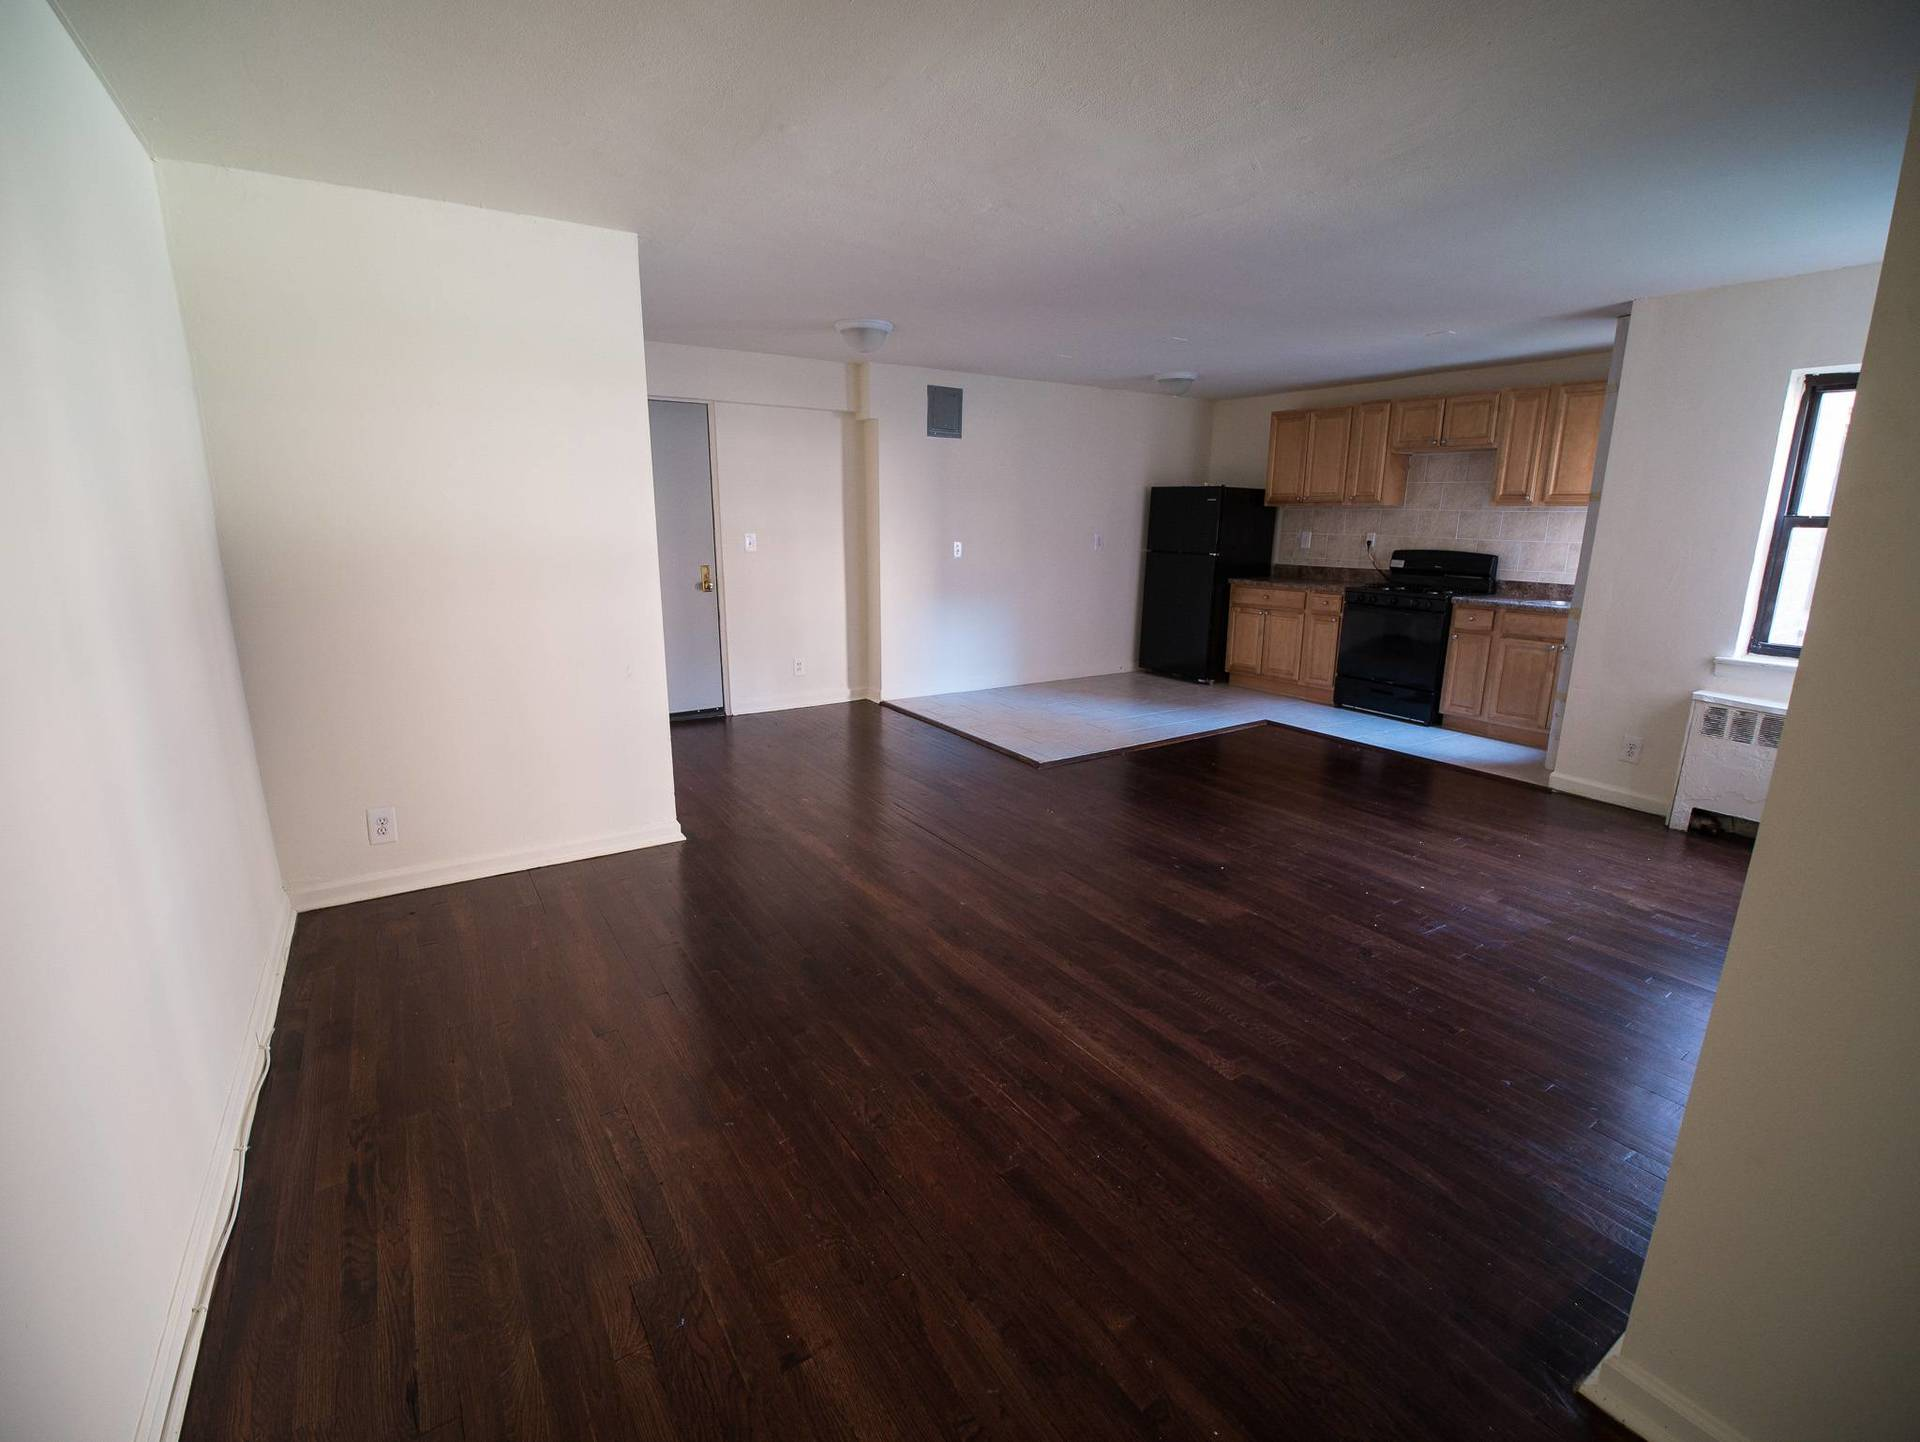 Apartment Rental Bridgeport Ct One Bedroom Apartments